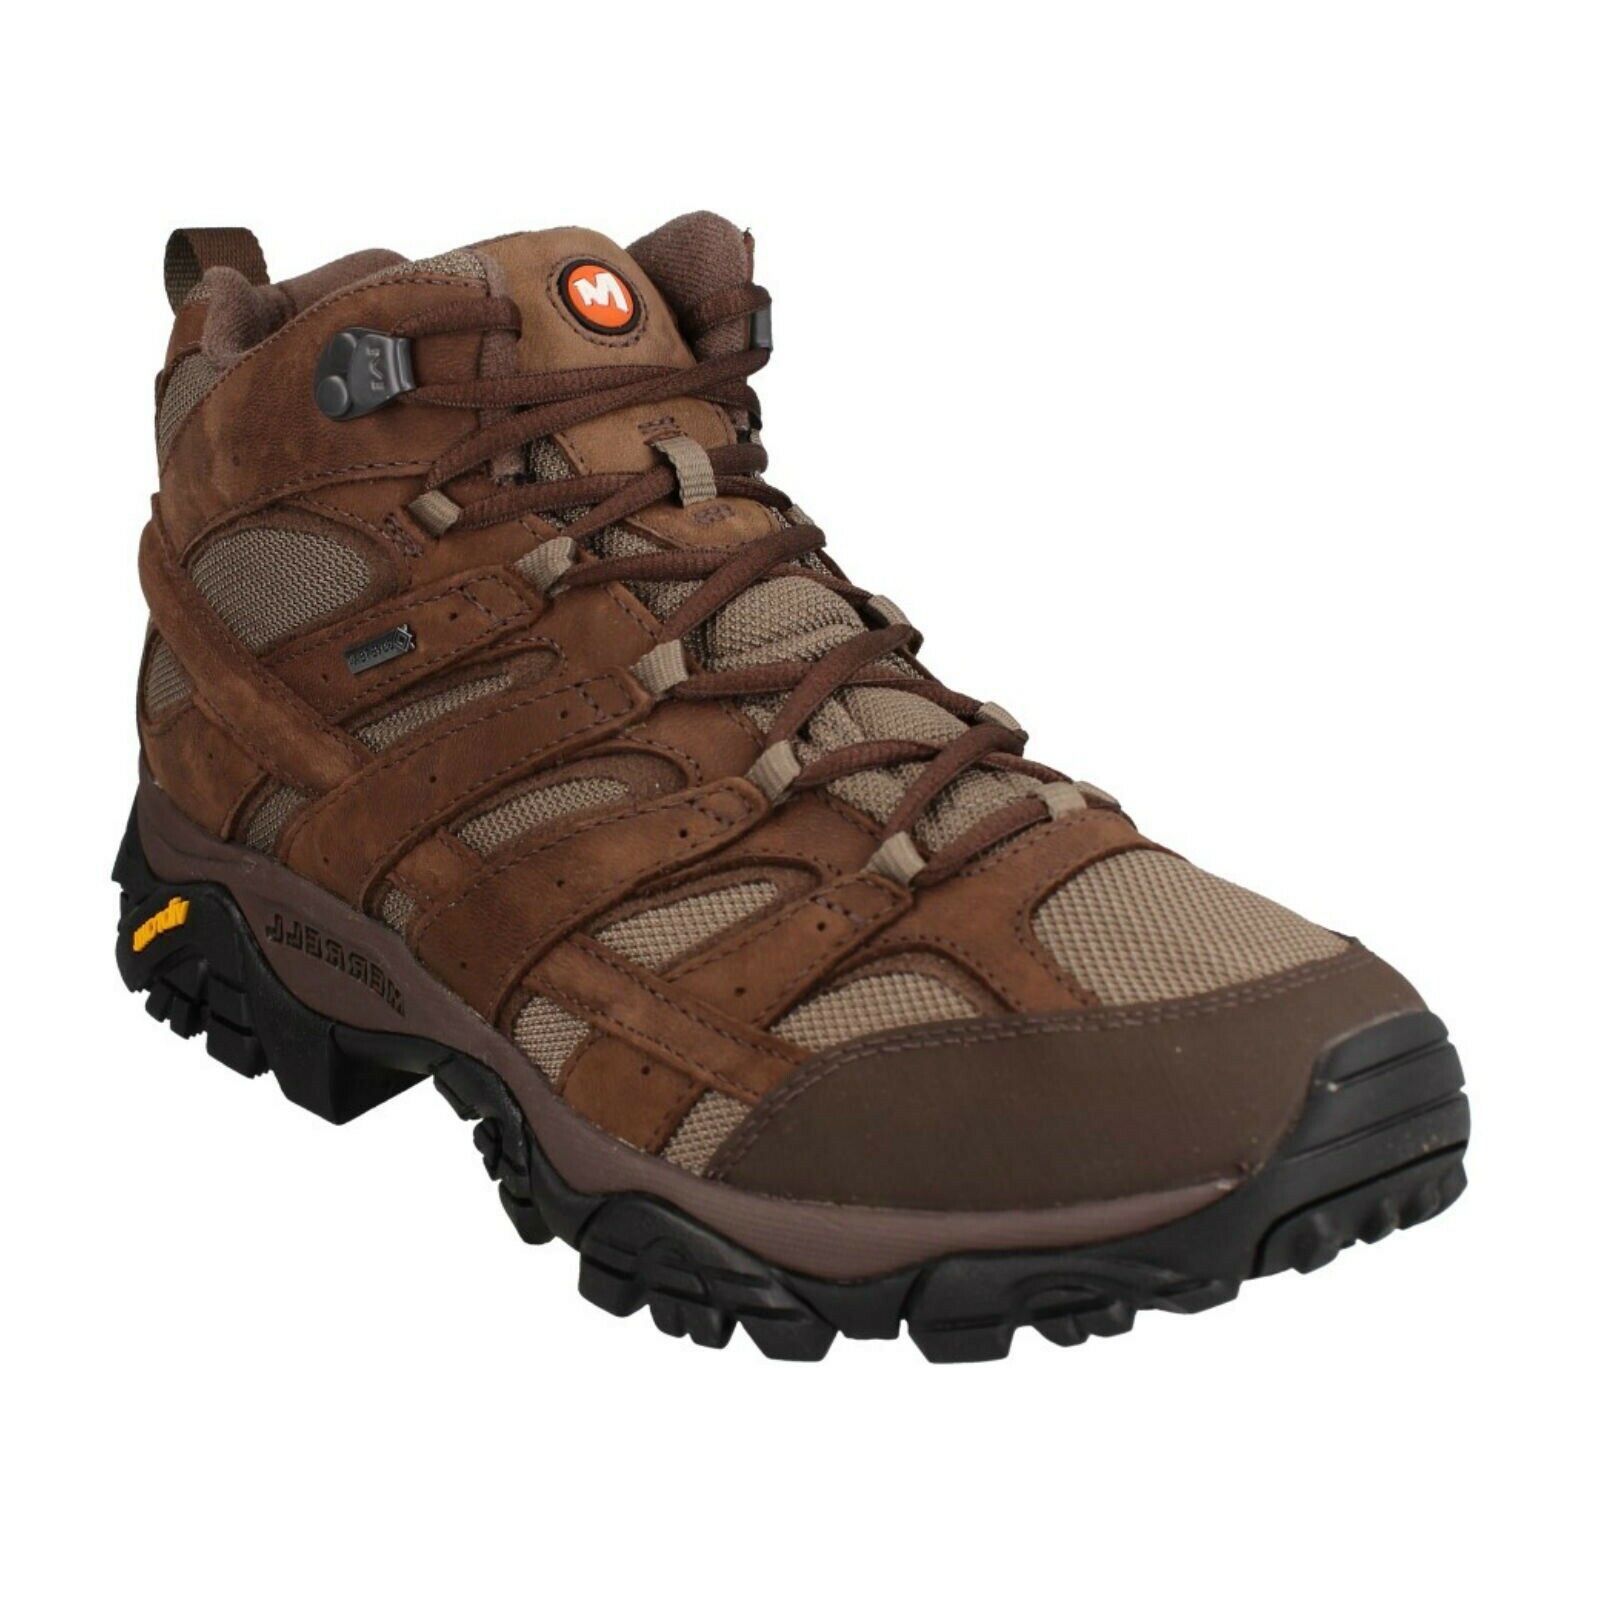 Merrell J46553 Moab 2 Smooth Mid GTX Mens Trekking Hiking Waterproof Boots